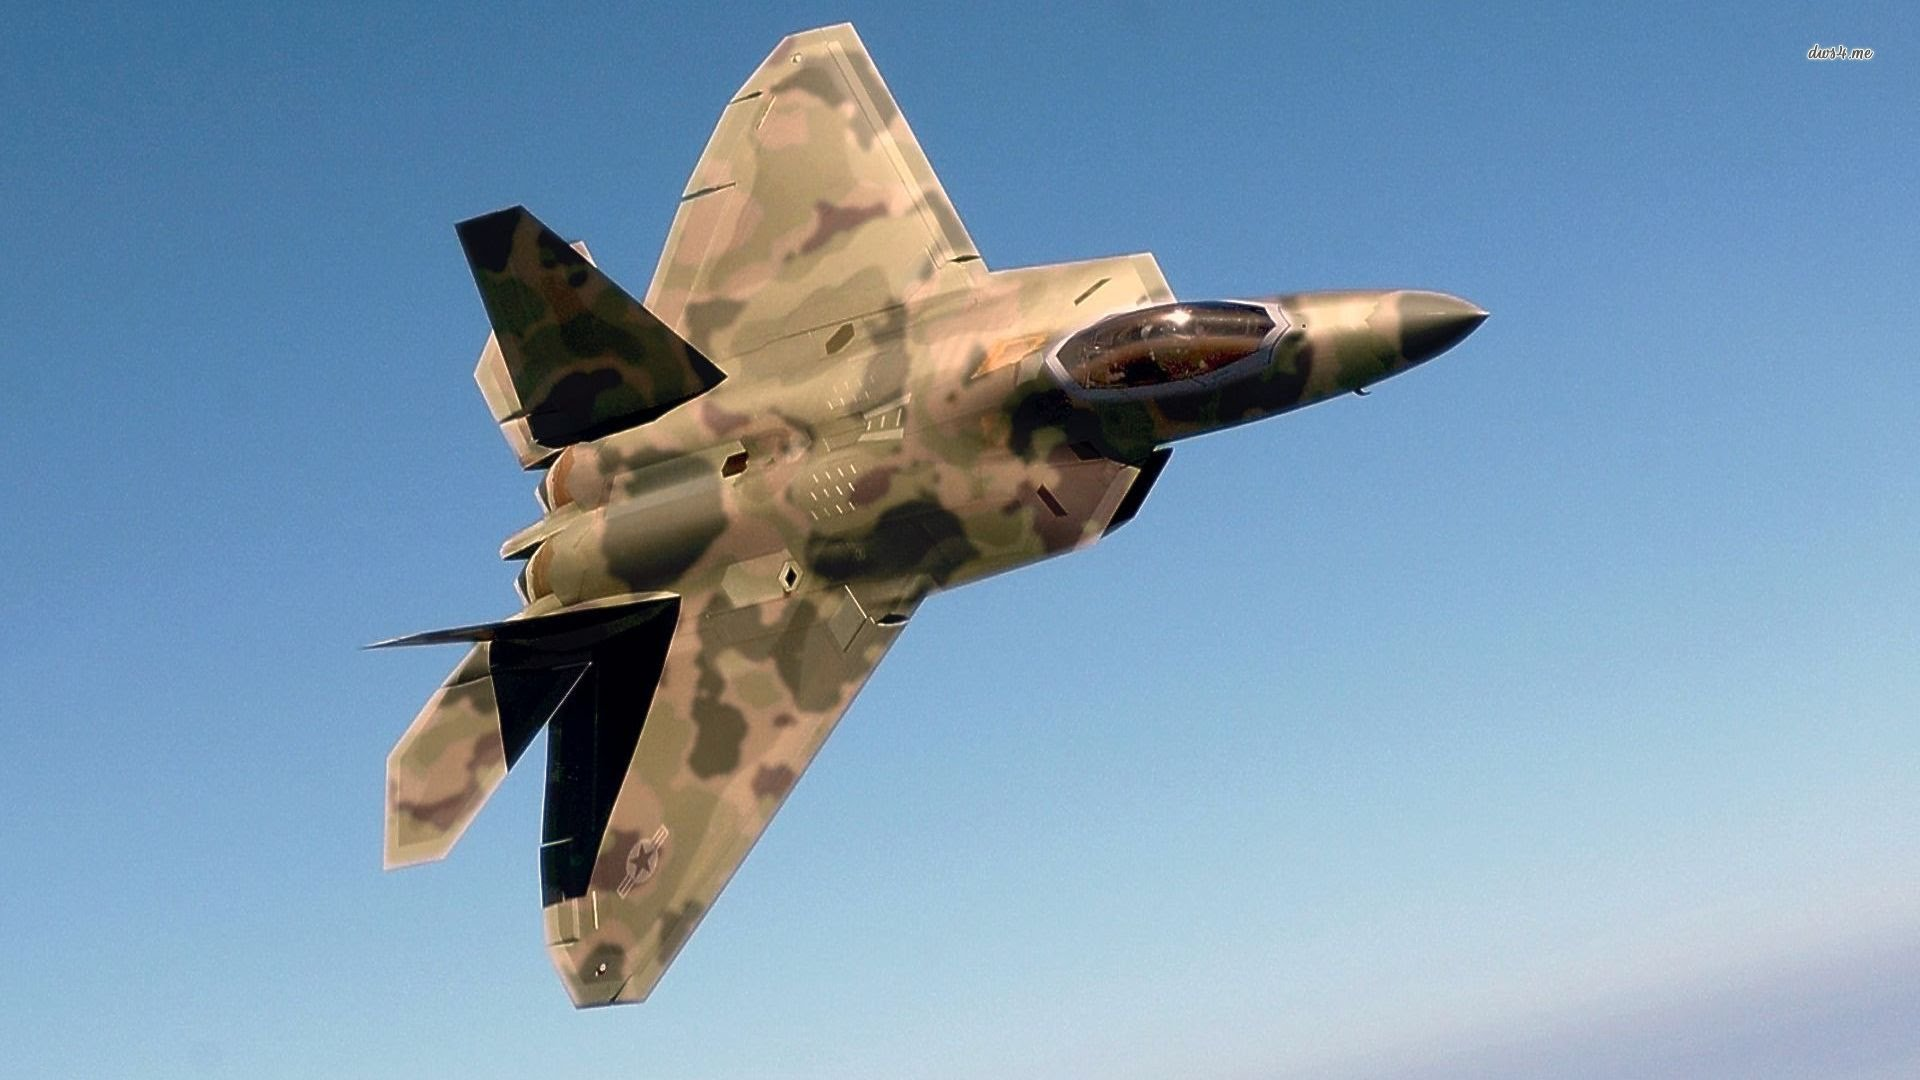 MARTIN F 22 RAPTOR IN ACTION 2014 HD 1920x1080